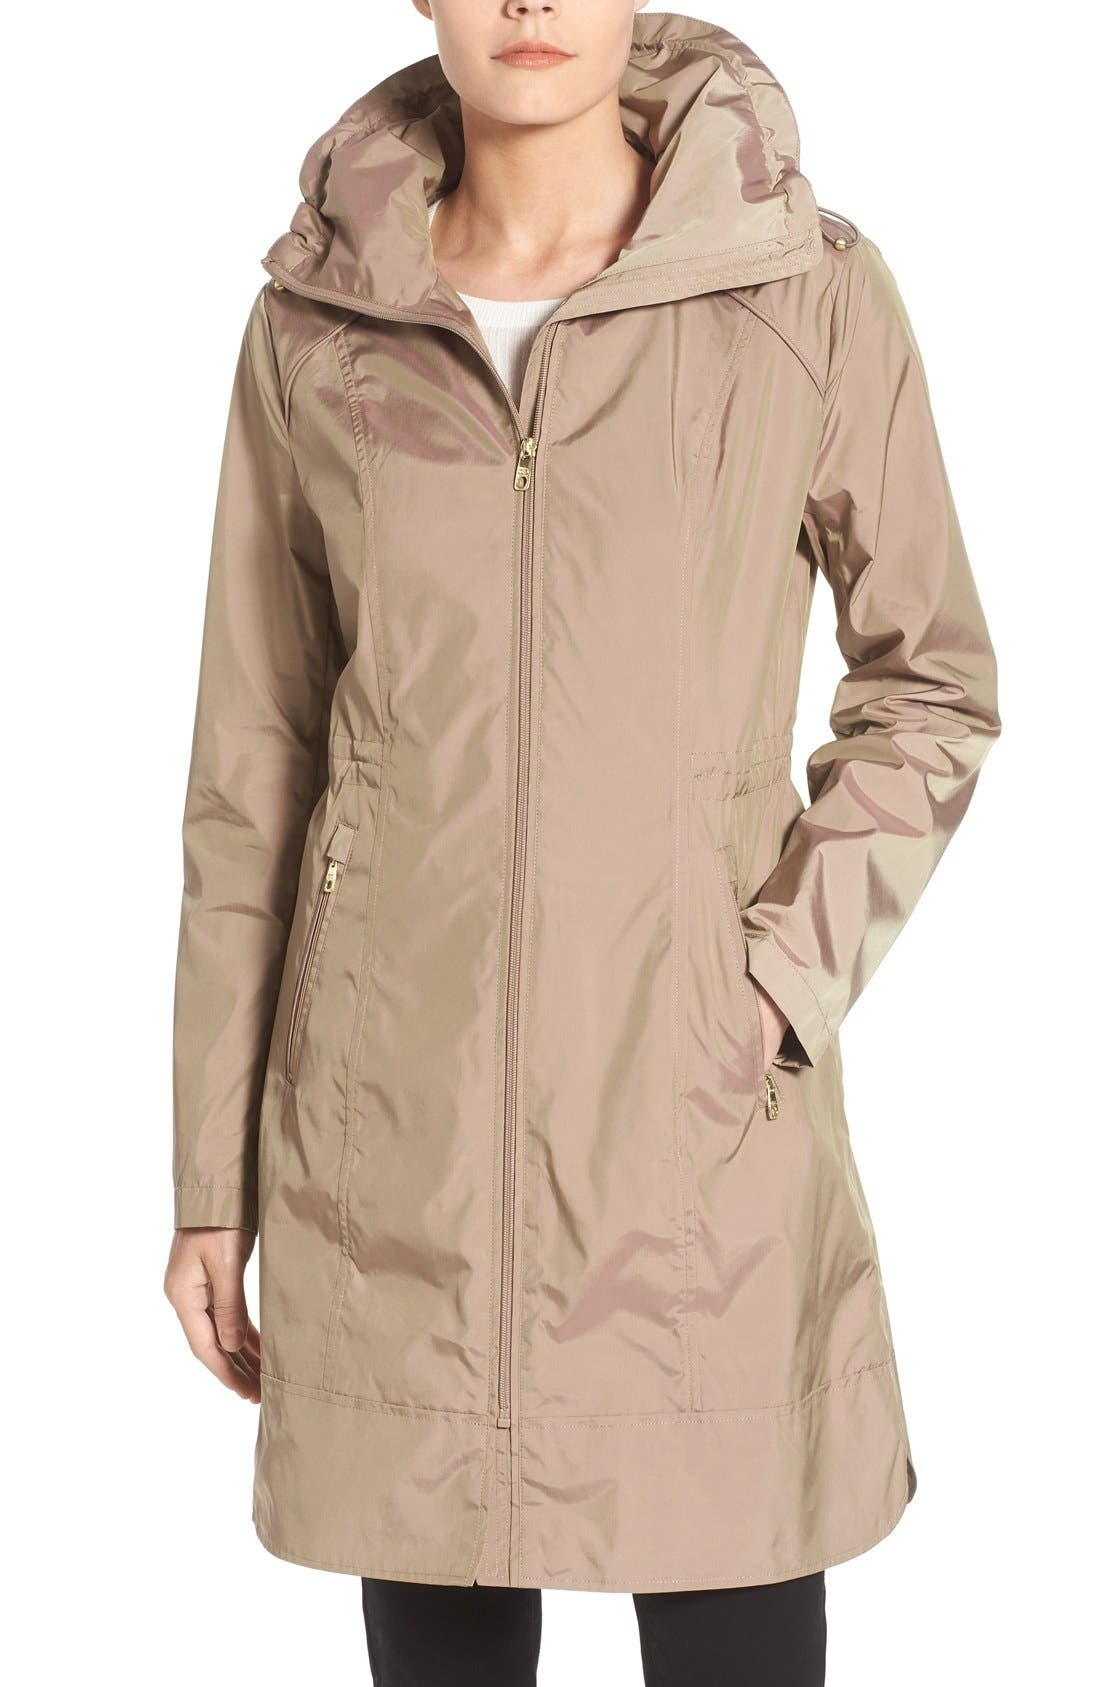 COLE HAAN SIGNATURE Packable Hooded Anorak